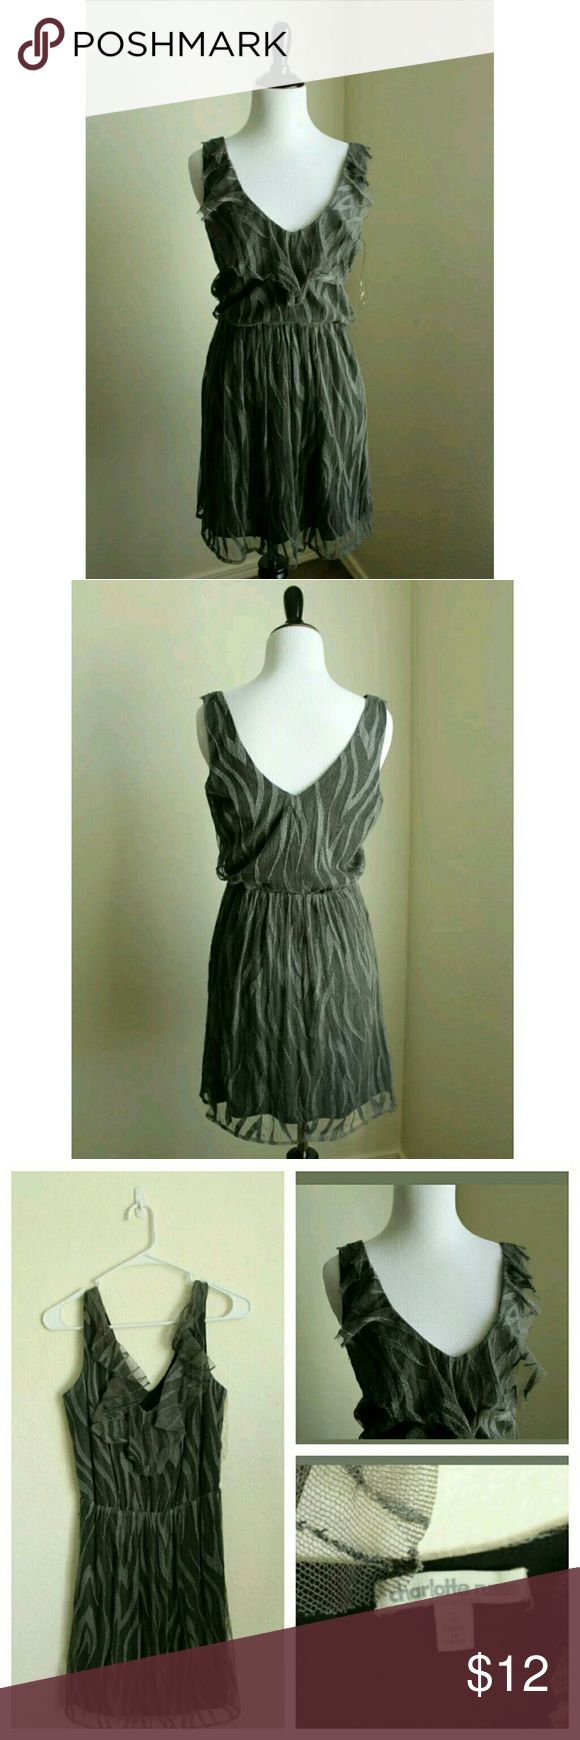 """Charlotte russe dress small black gray net mesh term details & description:  Black and gray, net fabric, fit and flare, sleeveless   Approximate Measurements in inches:   Armpit to armpit : 18"""" Shoulder to hem: 36"""" Sleeve : Charlotte Russe Dresses Midi"""